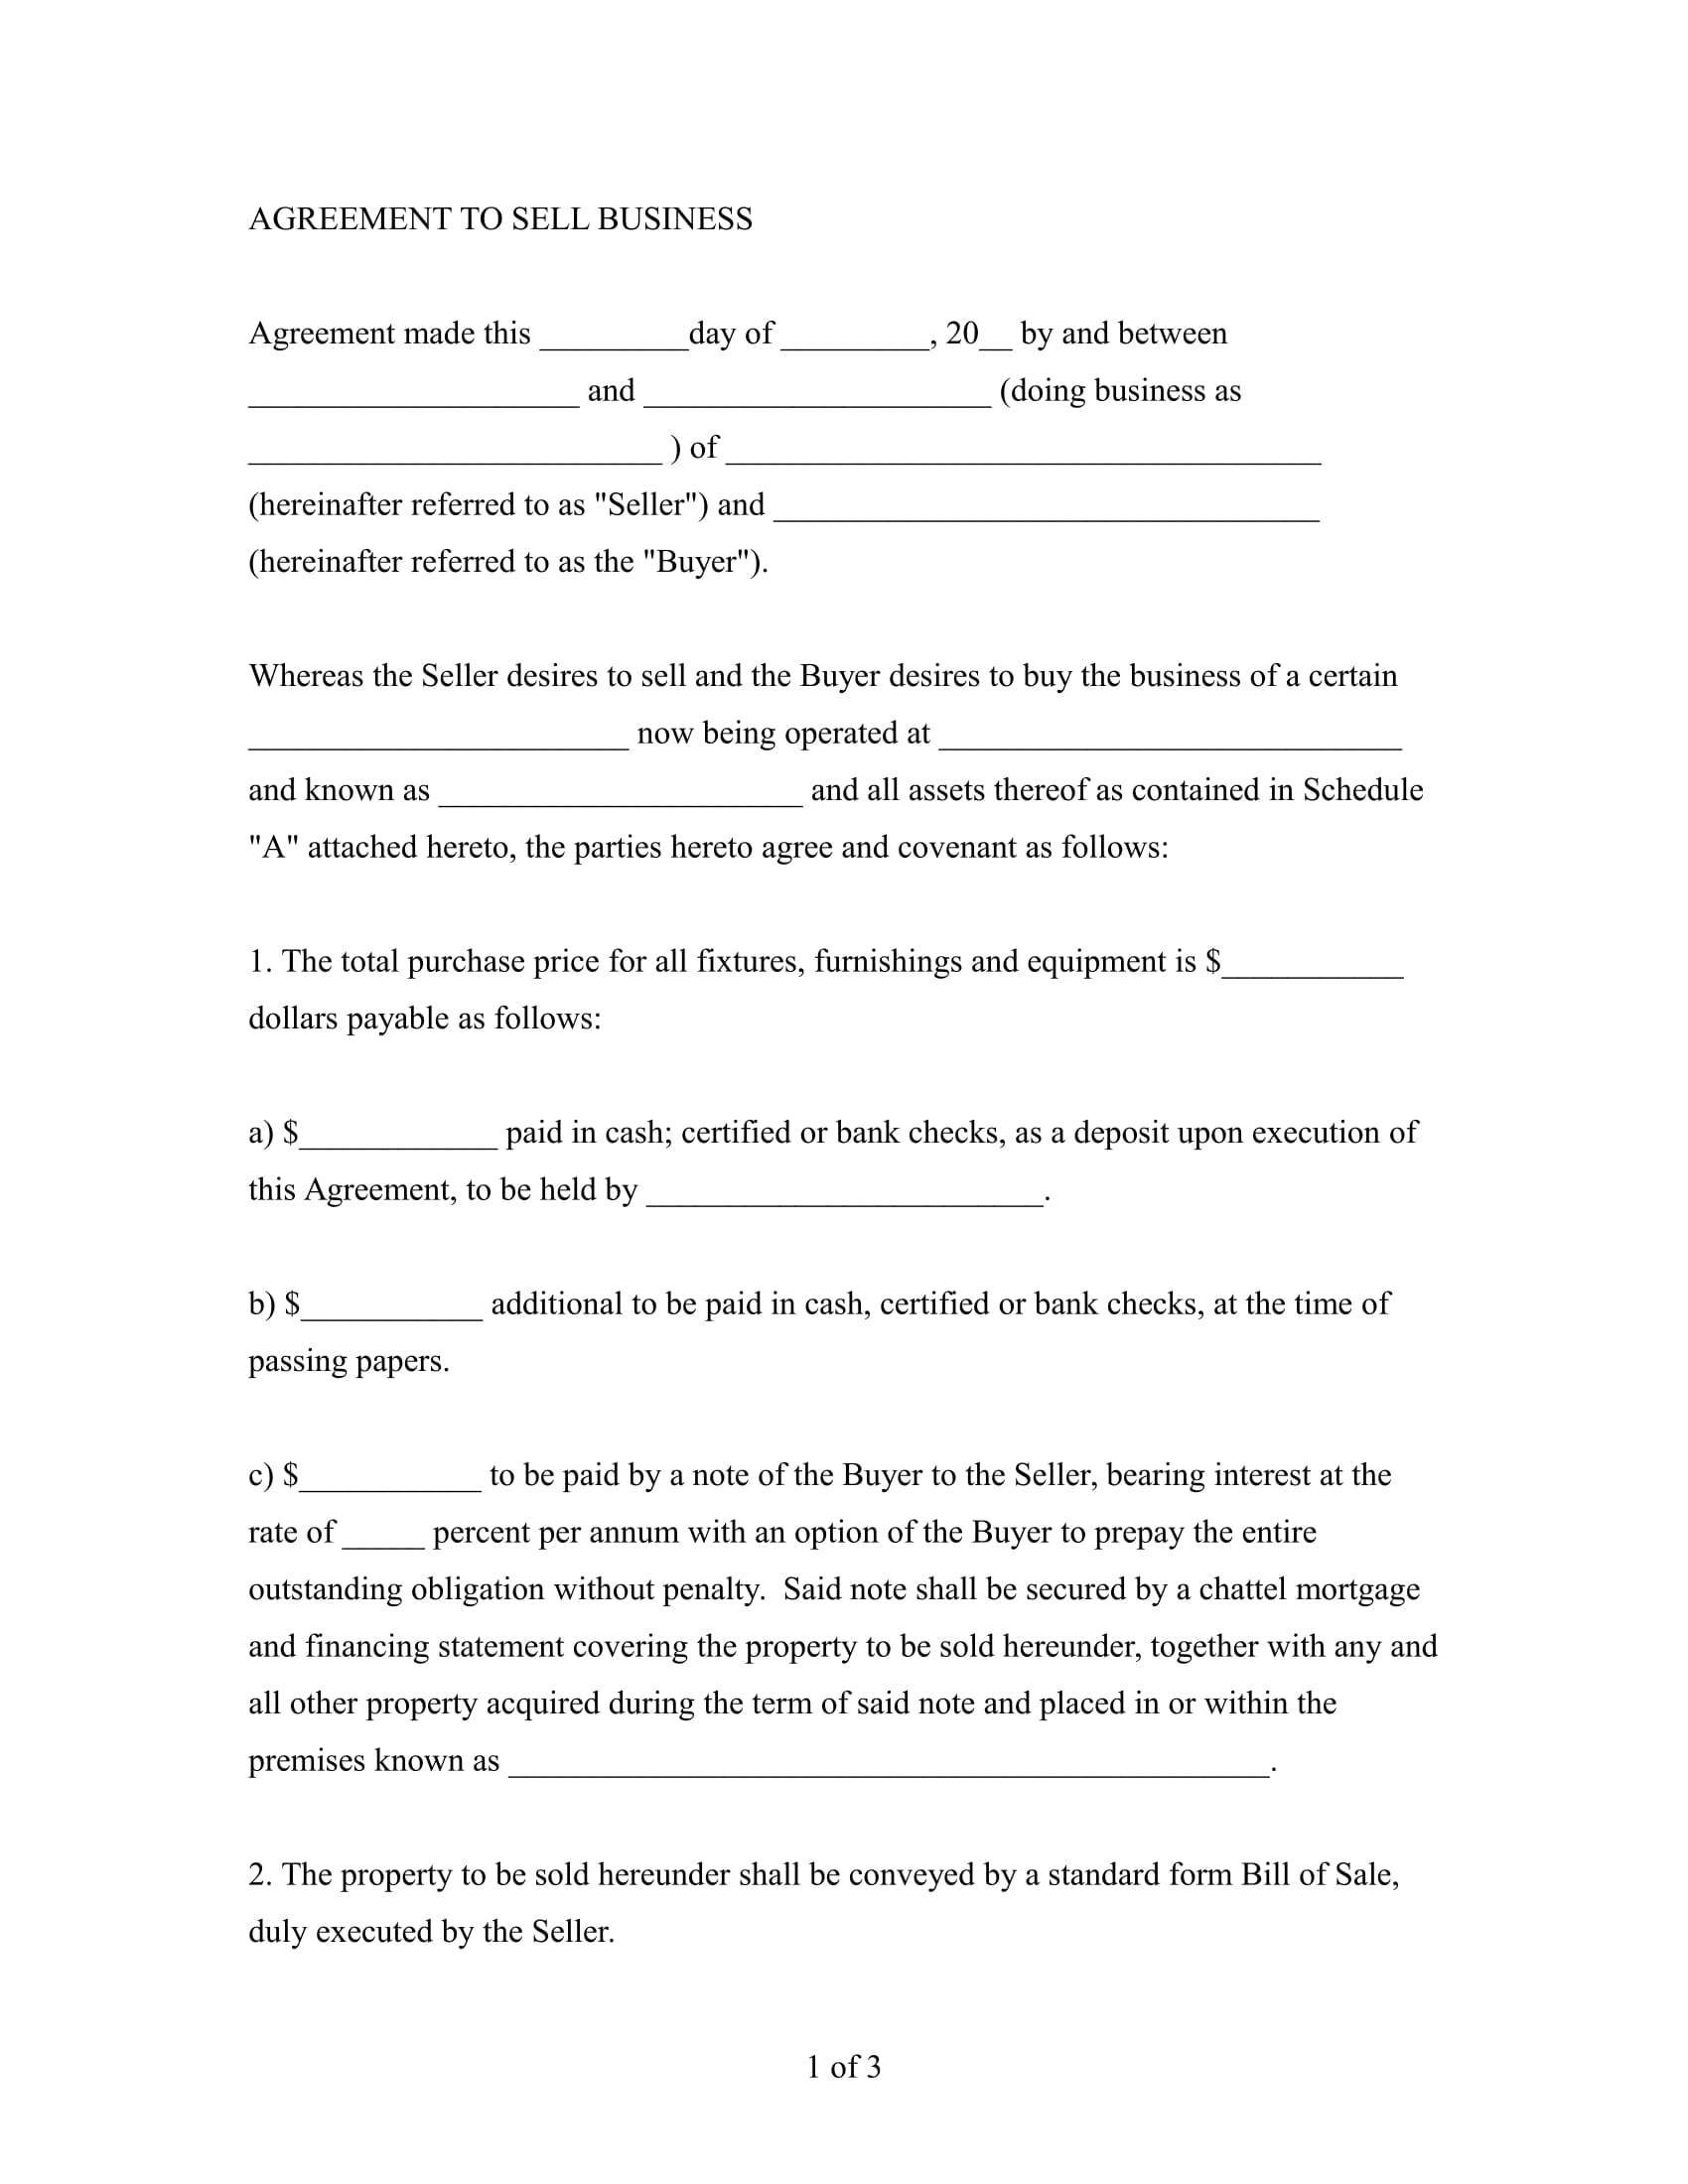 agreement to sell business example